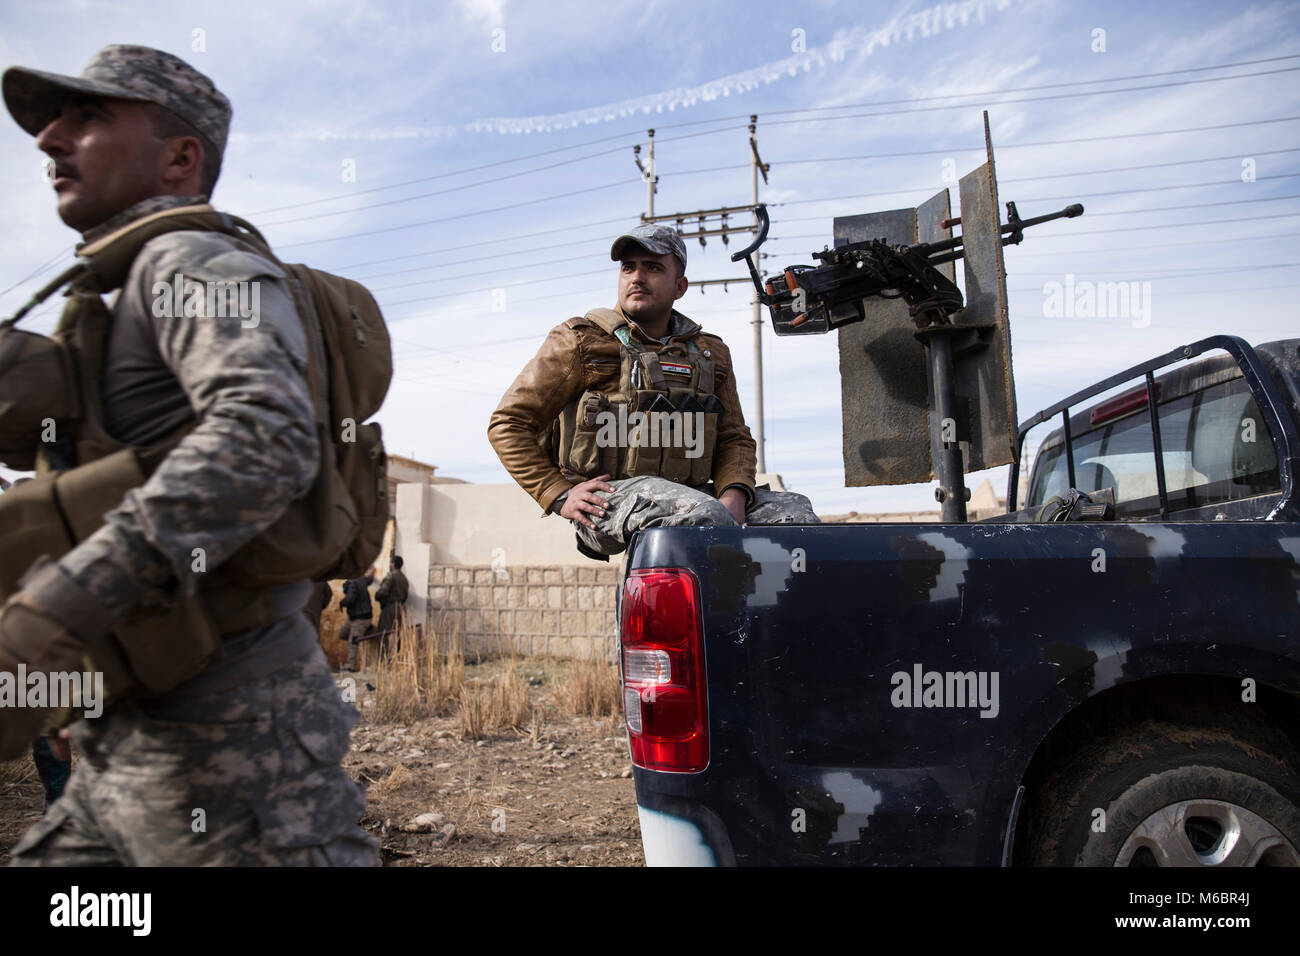 Mosul, Iraq. 8th December 2016 - The Iraqi army and police partner to guard the streets of Mosul while coalition jets thrash through the sky. - © Ty F Stock Photo